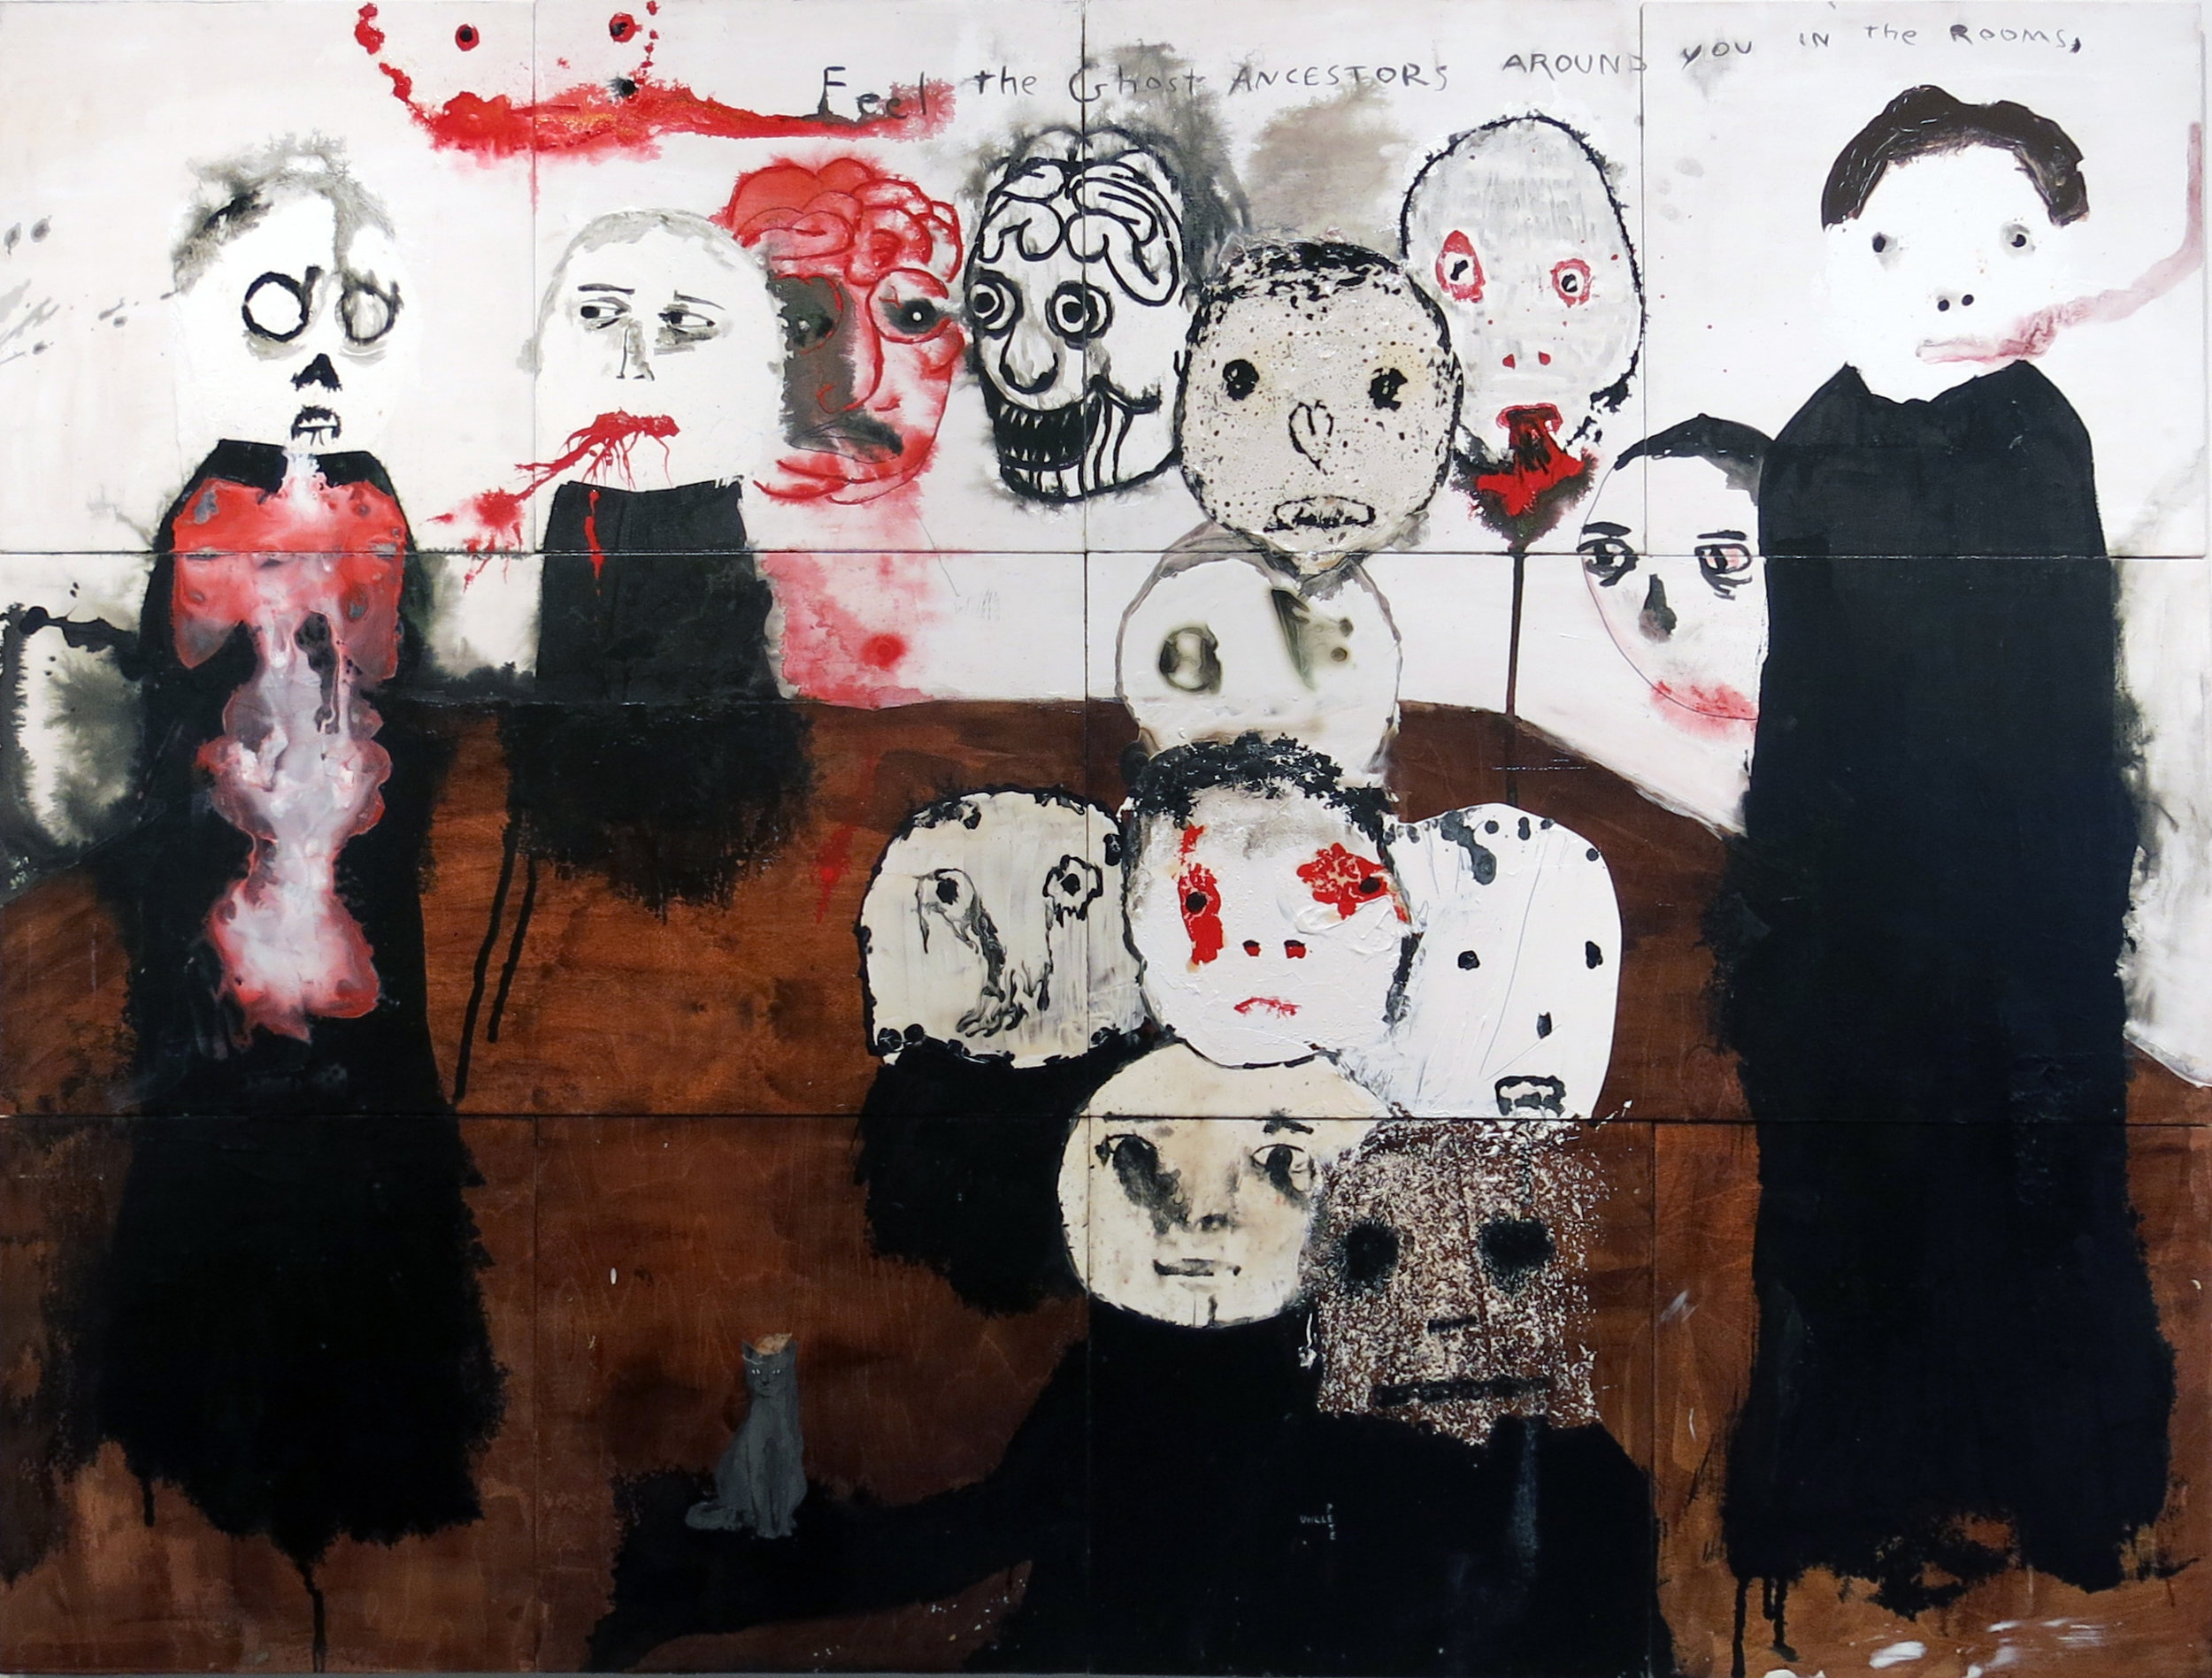 Neil Farber, Feel the Ghost Ancestors Around You in the Rooms, 2009, mixed media on panel, 54h x 72w in.